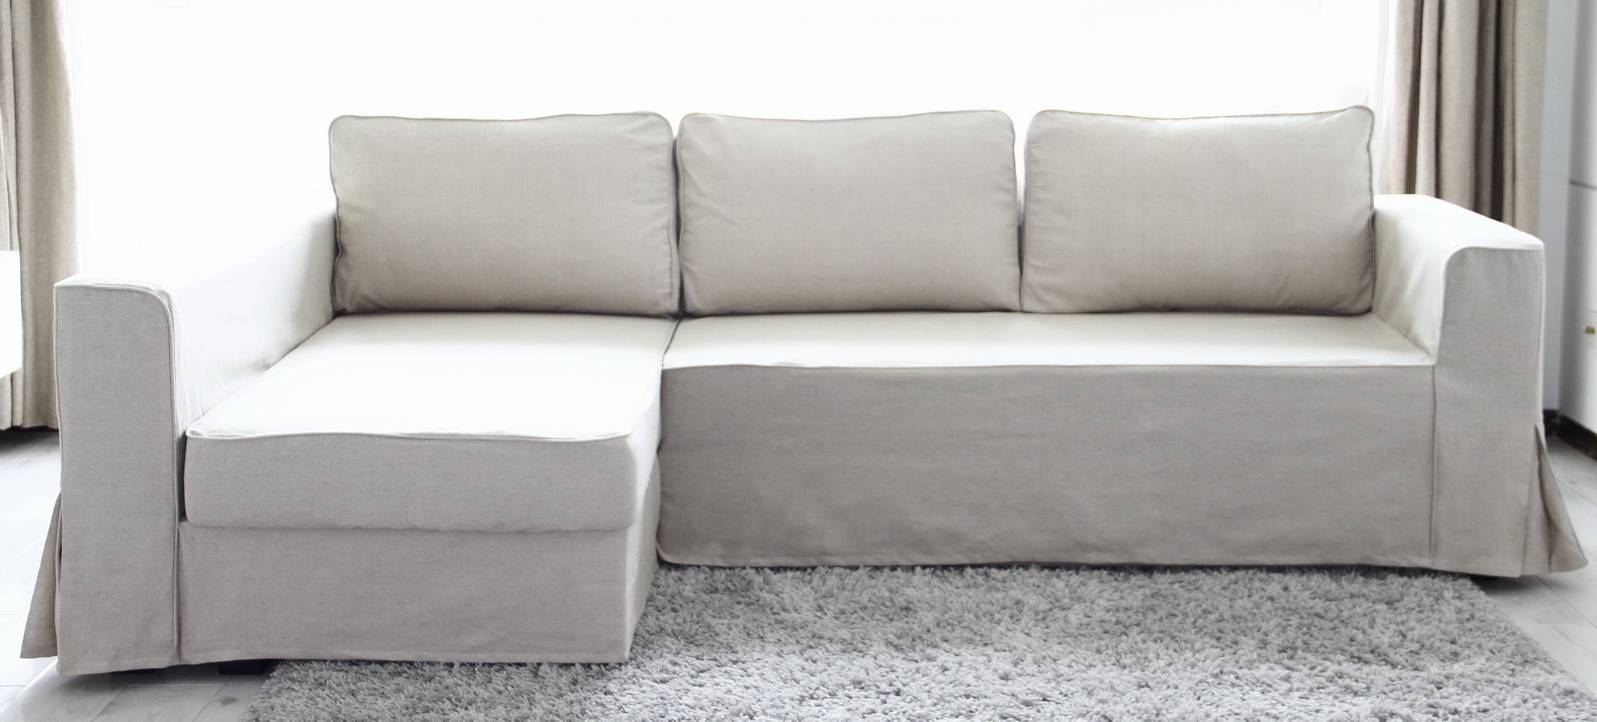 About The Ikea Sleeper Sofa : S3Net – Sectional Sofas Sale For Ikea Sectional Sofa Sleeper (View 1 of 25)